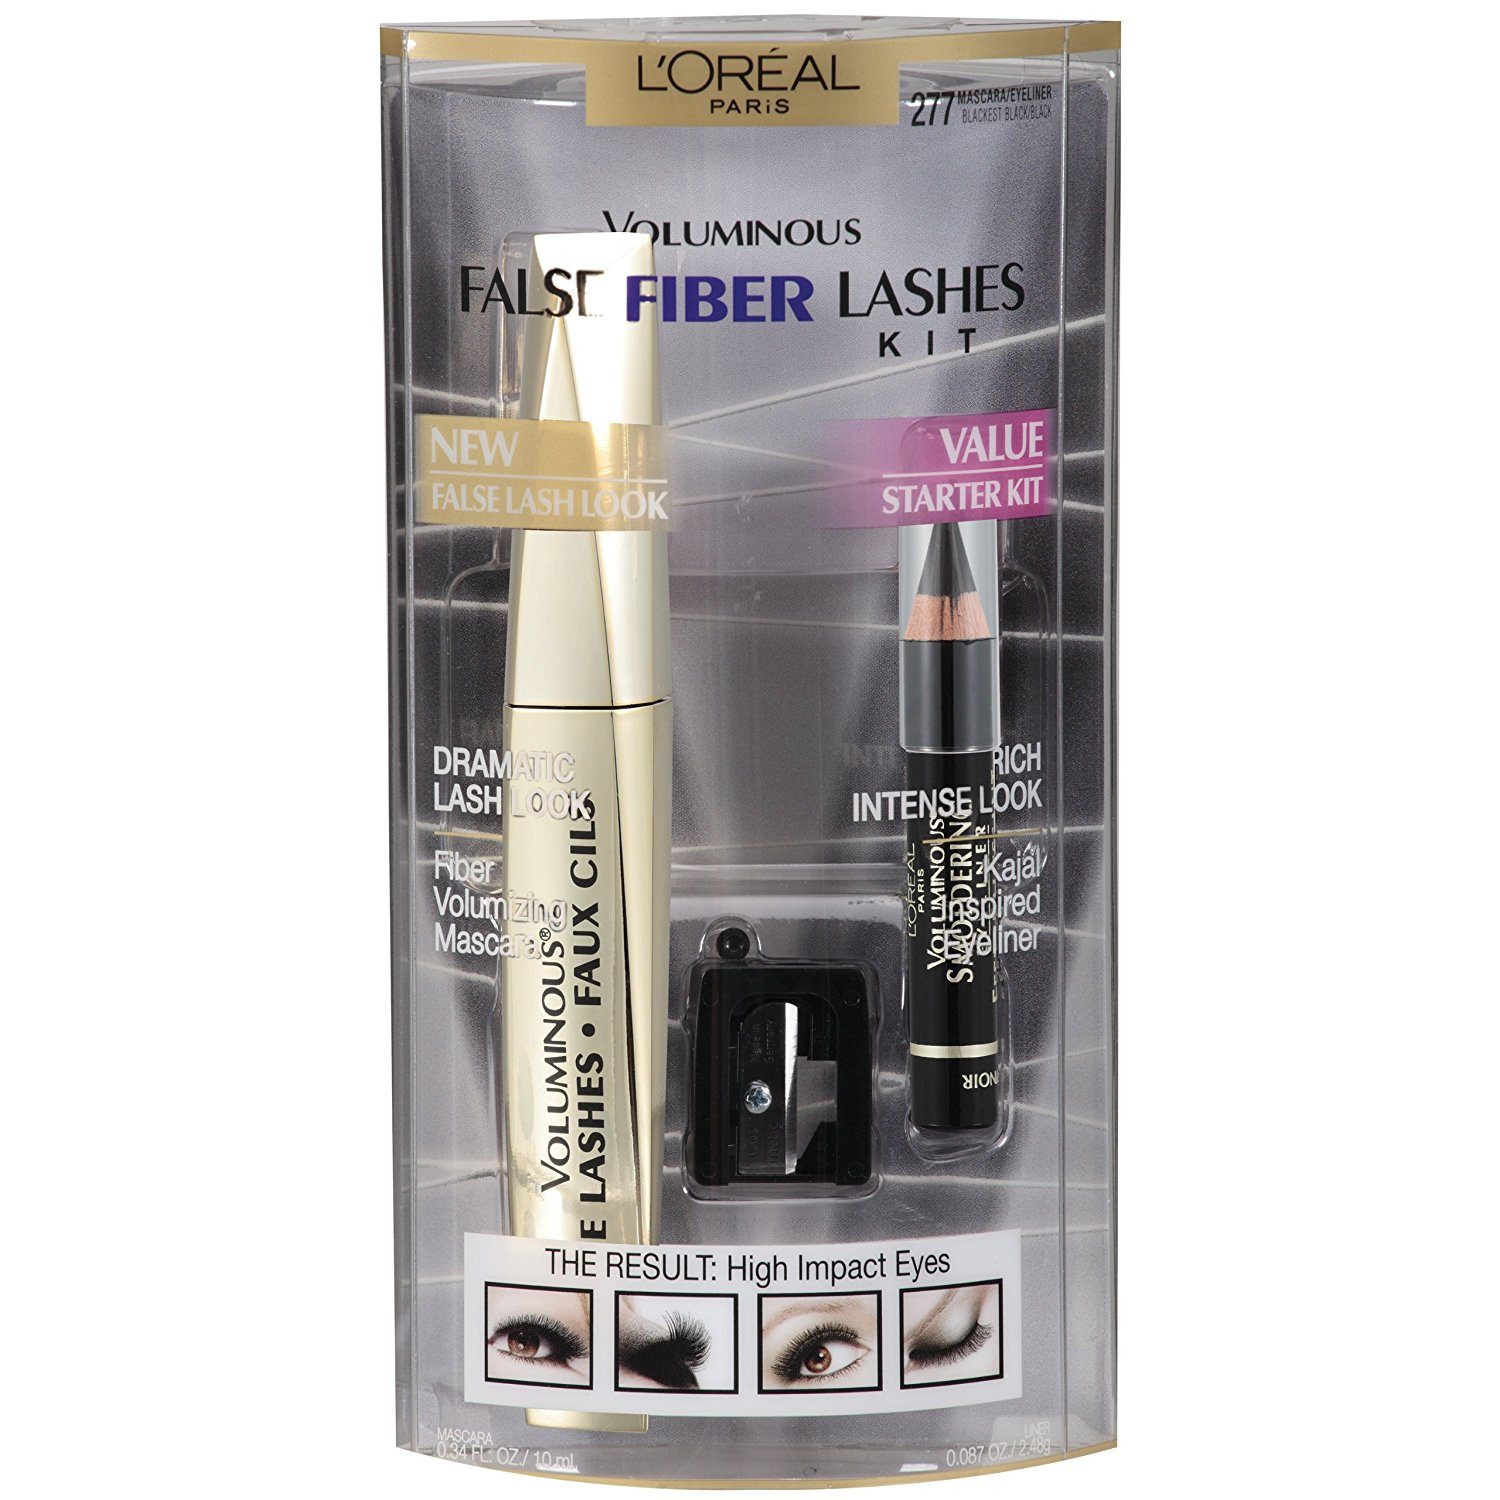 Voluminous False Fiber Mascara Lash Kit By LOreal Paris